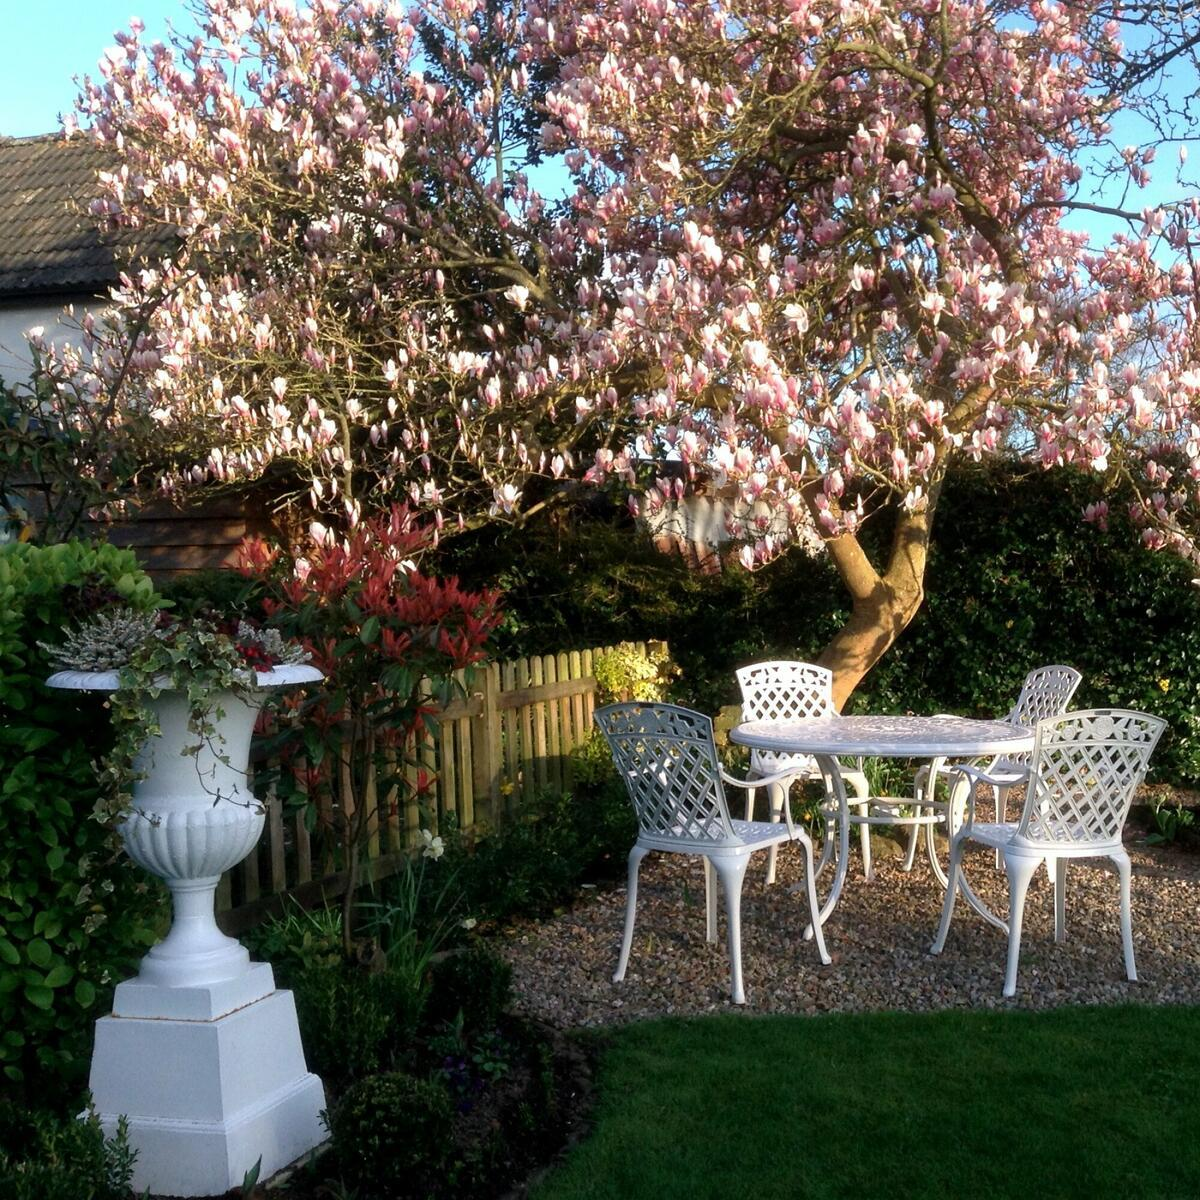 Guests are welcome to enjoy Arboyne House garden